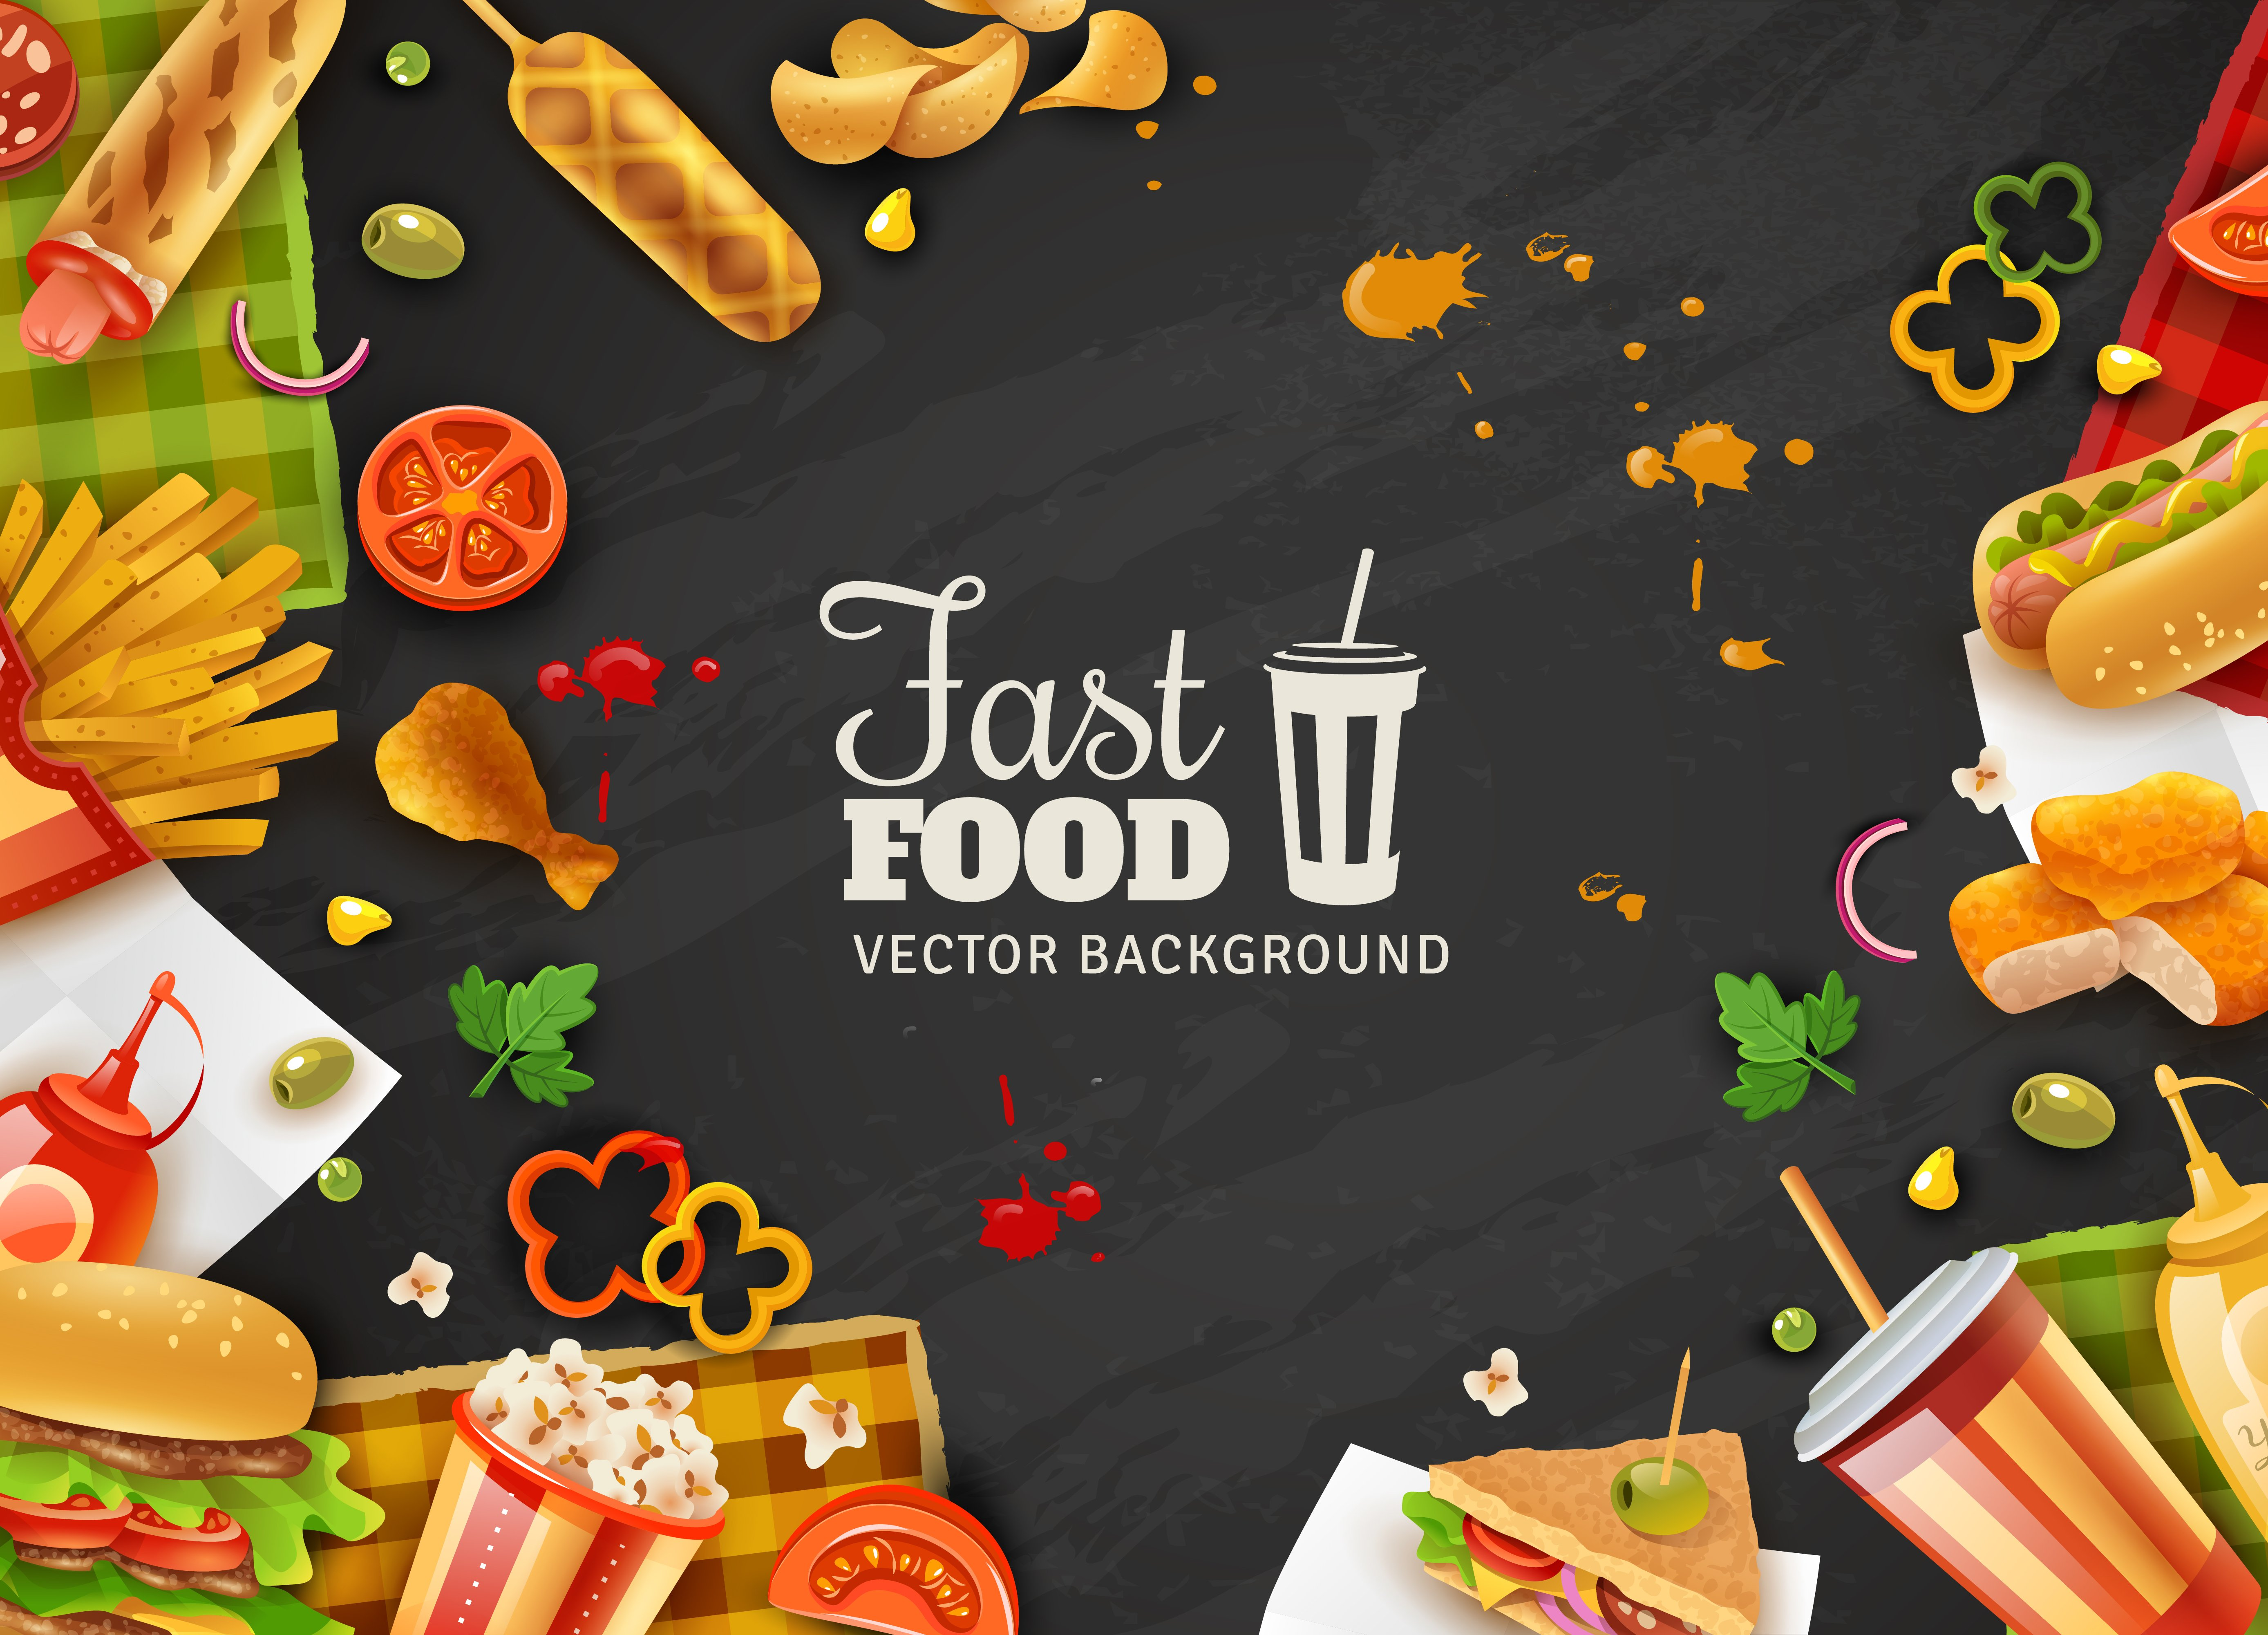 Colorful Food Wallpaper Free Download: Fast Food Black Background Poster